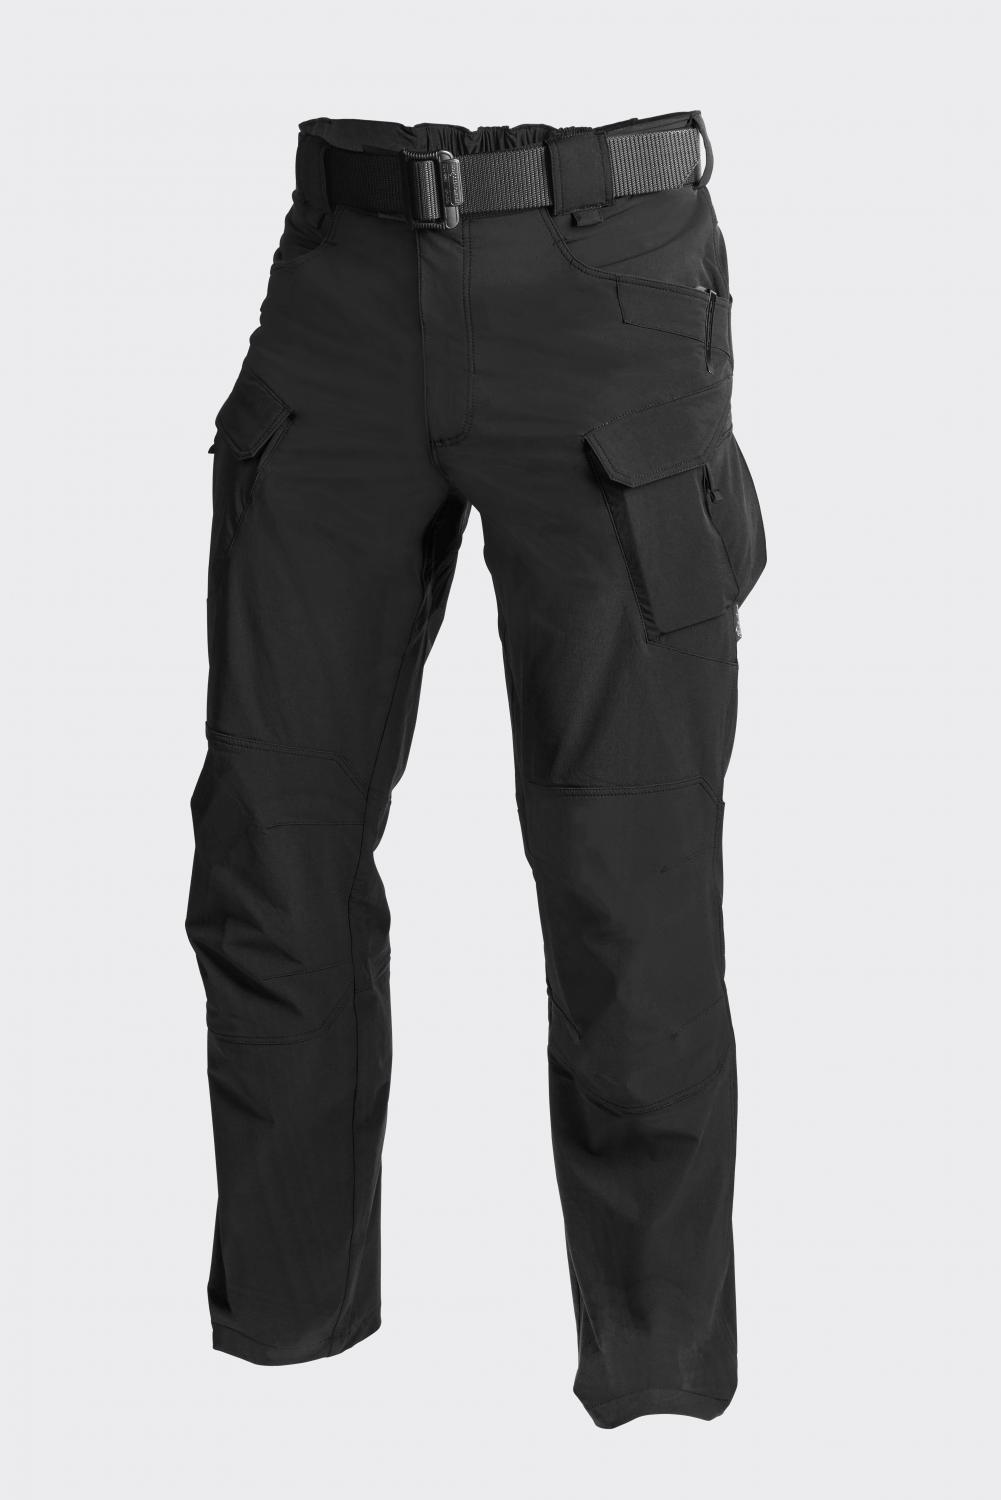 OUTDOOR TACTICAL PANTS - Nylon Black